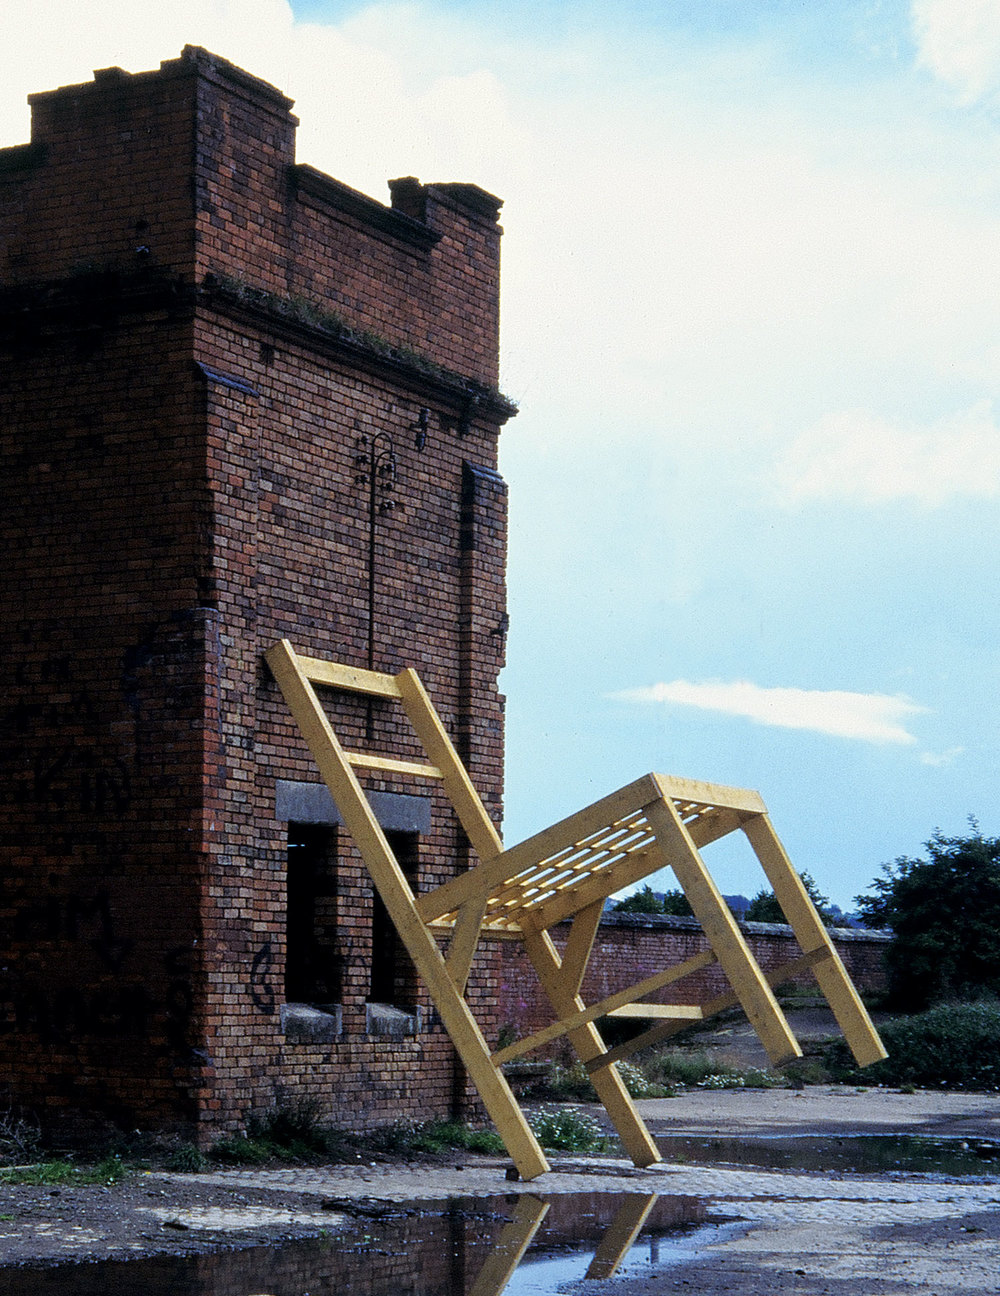 tom-gormally-sculpture-ireland-installation-watching-river.jpg